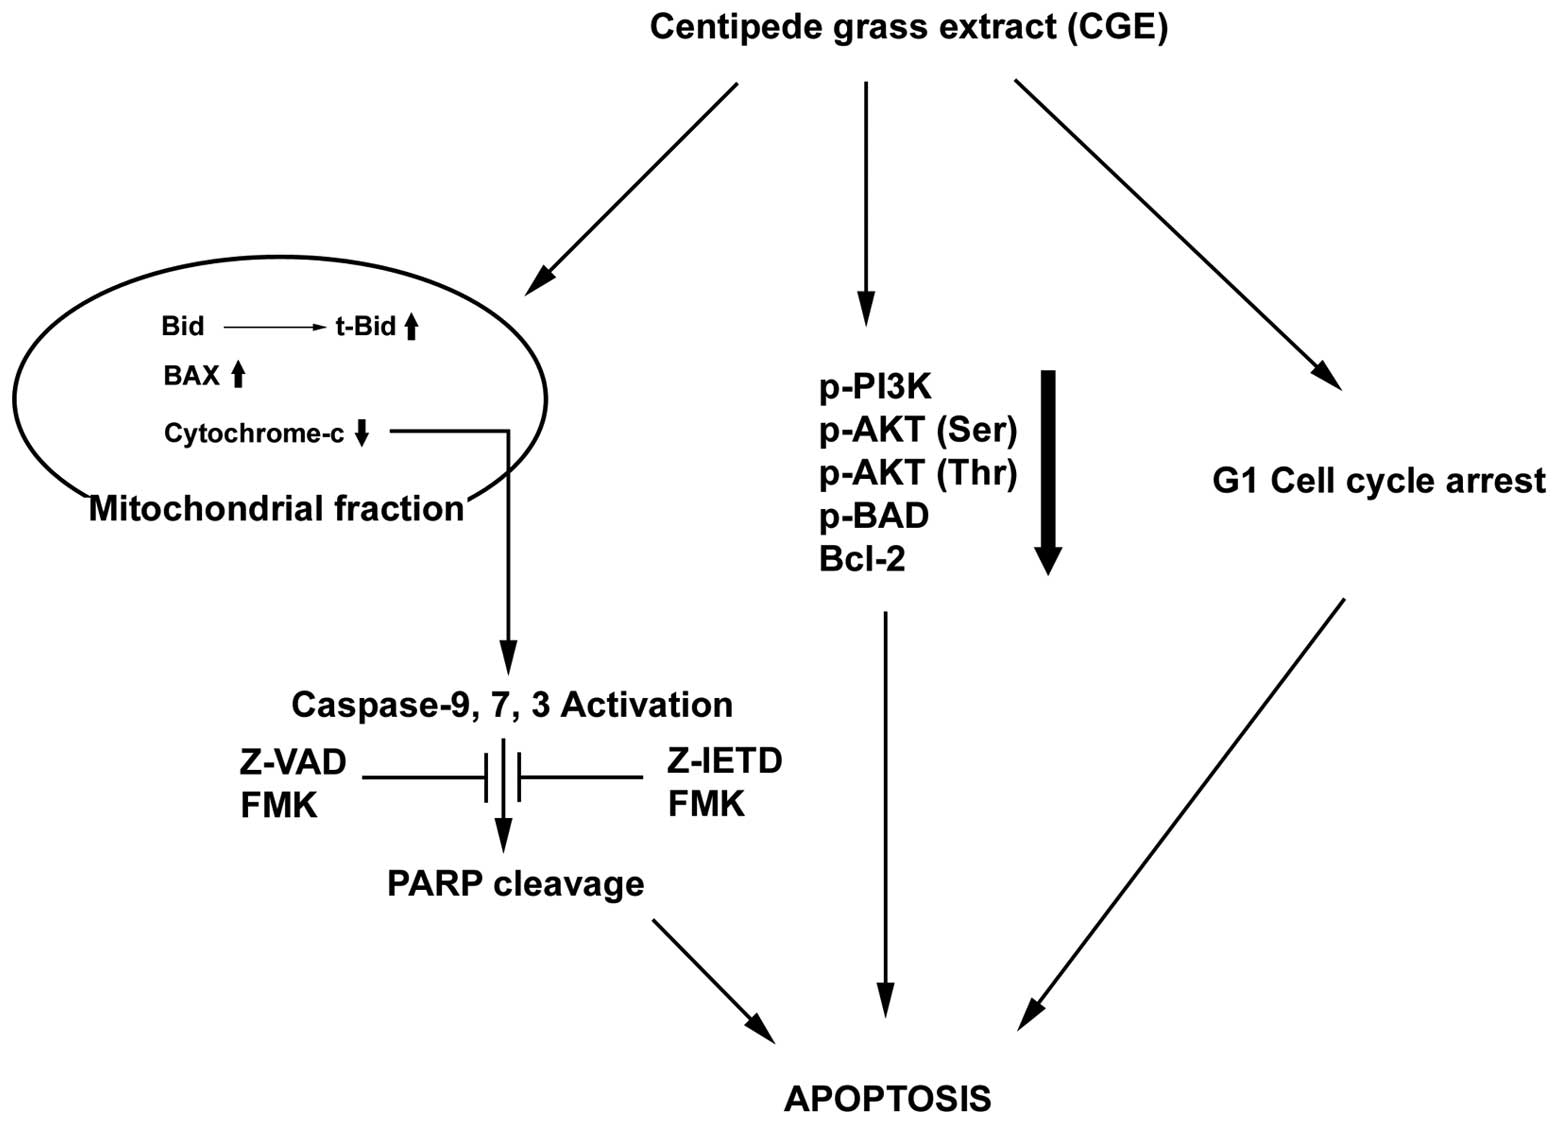 Centipedegrass extract induces apoptosis through the activation of schematic diagram of the apoptotic pathway activated by centipe degrass extract cge in leukemia cells pooptronica